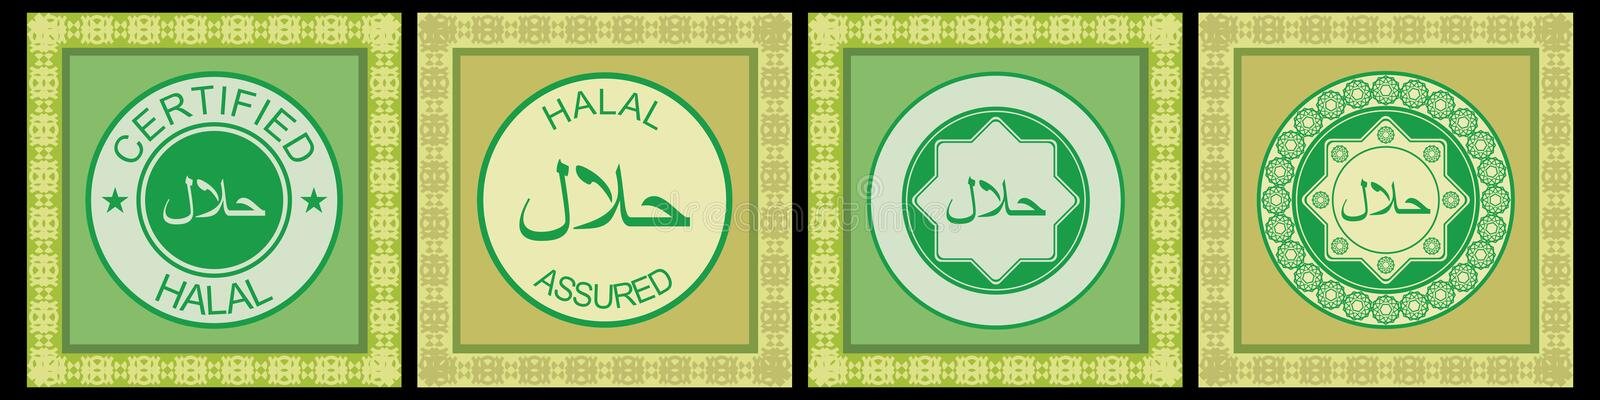 Halal rubber stamp royalty free illustration